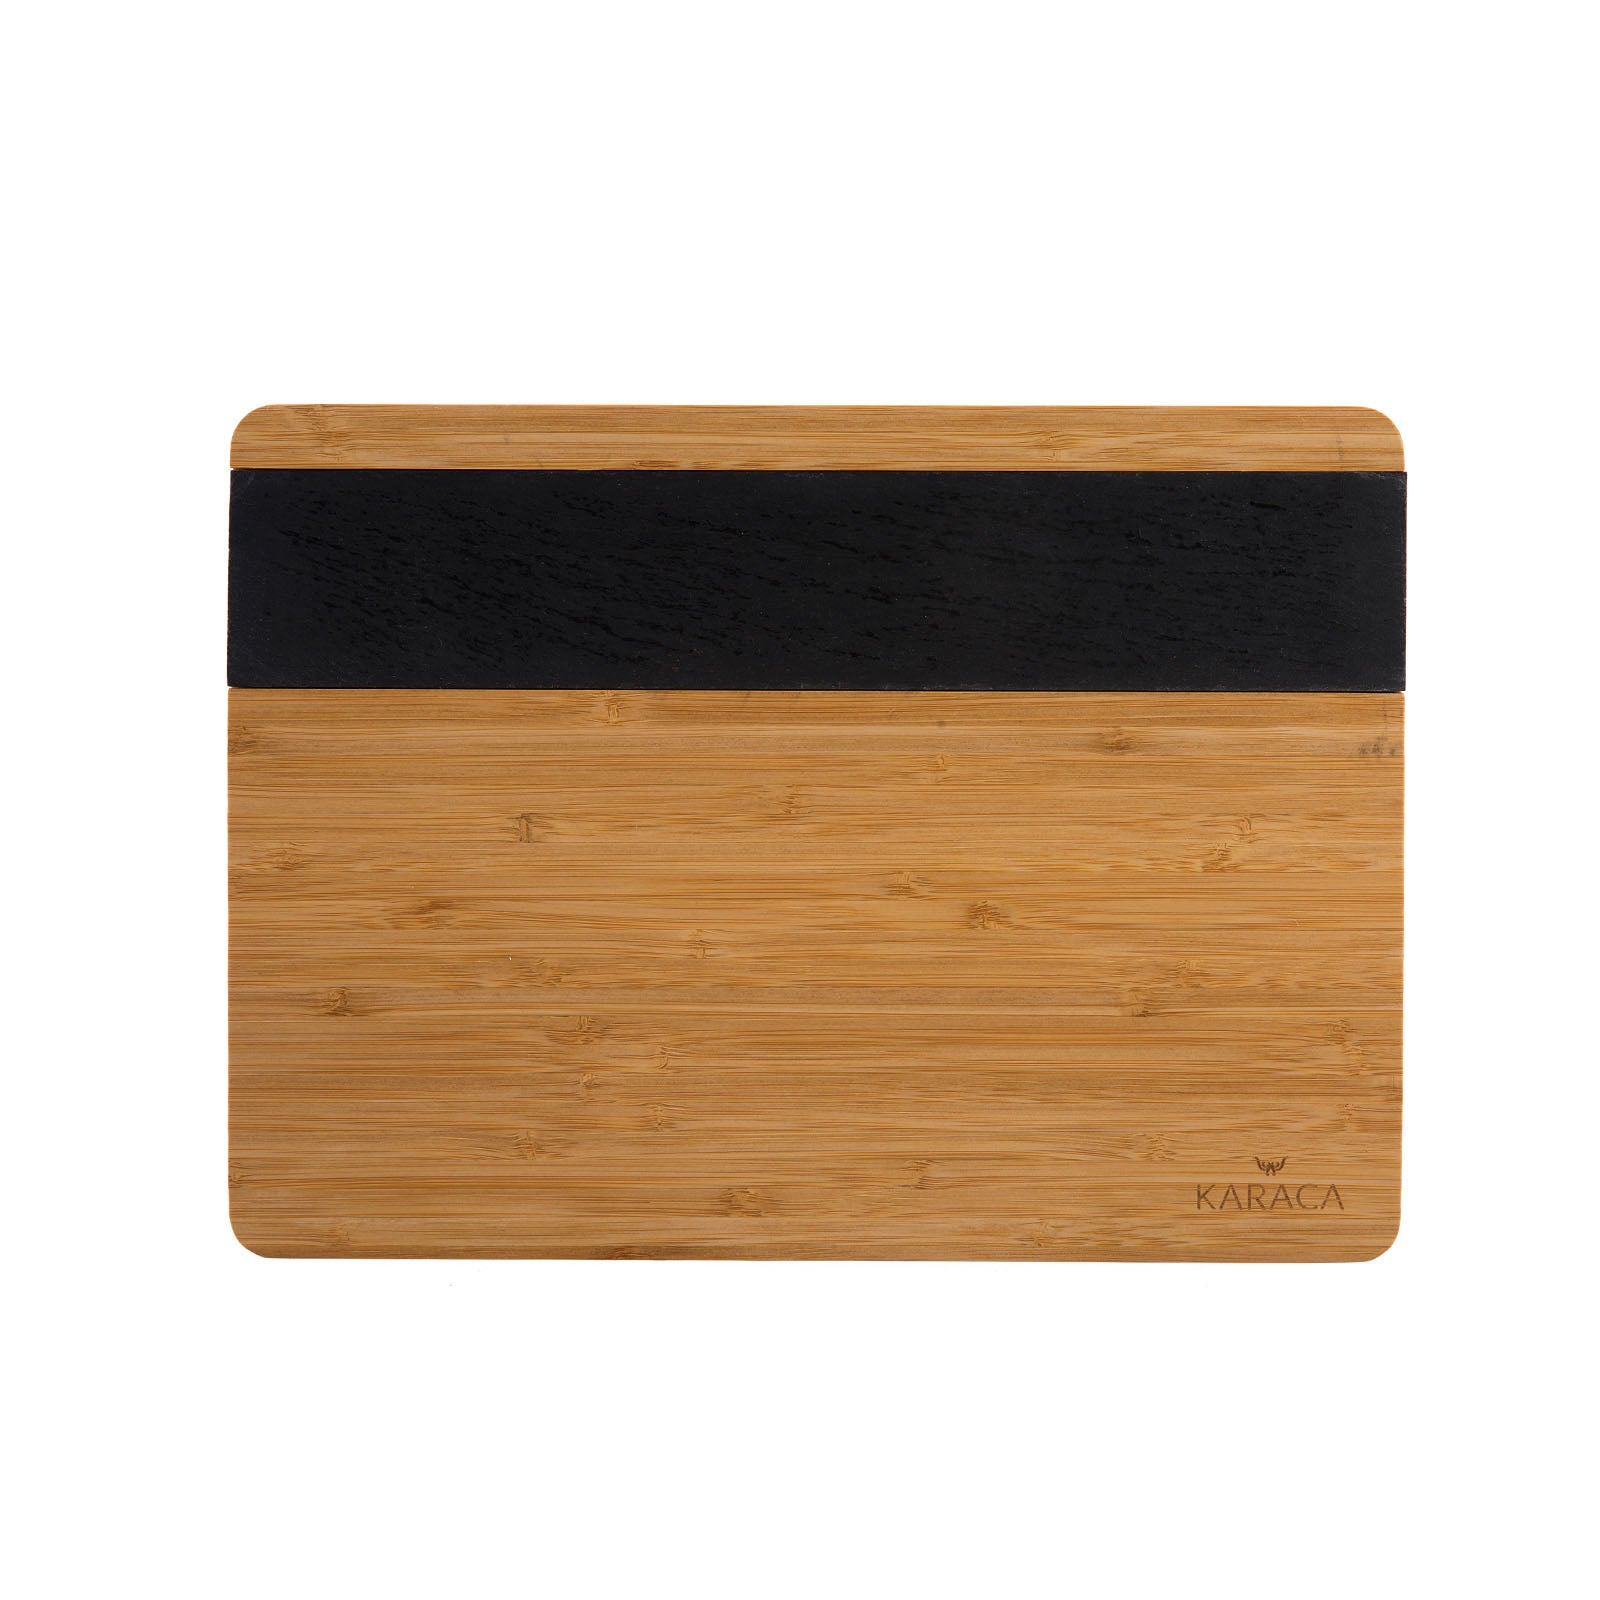 Karaca Black Wood Cutting Board-L 153.03.06.1339